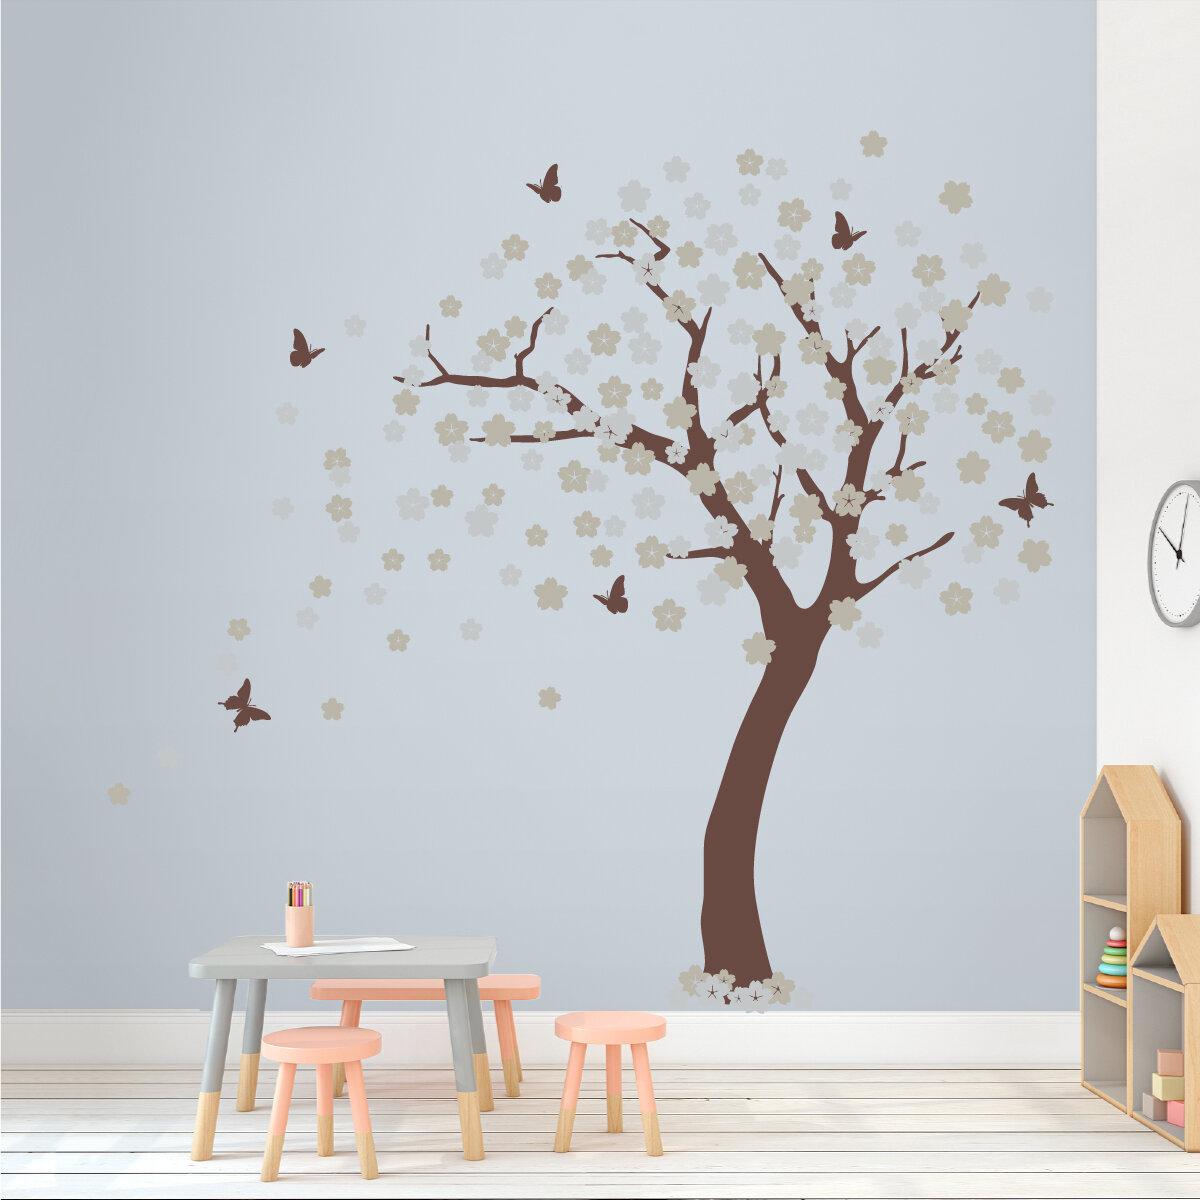 Exceptional Wallums Wall Decor Cherry Blossom Tree Wall Decal